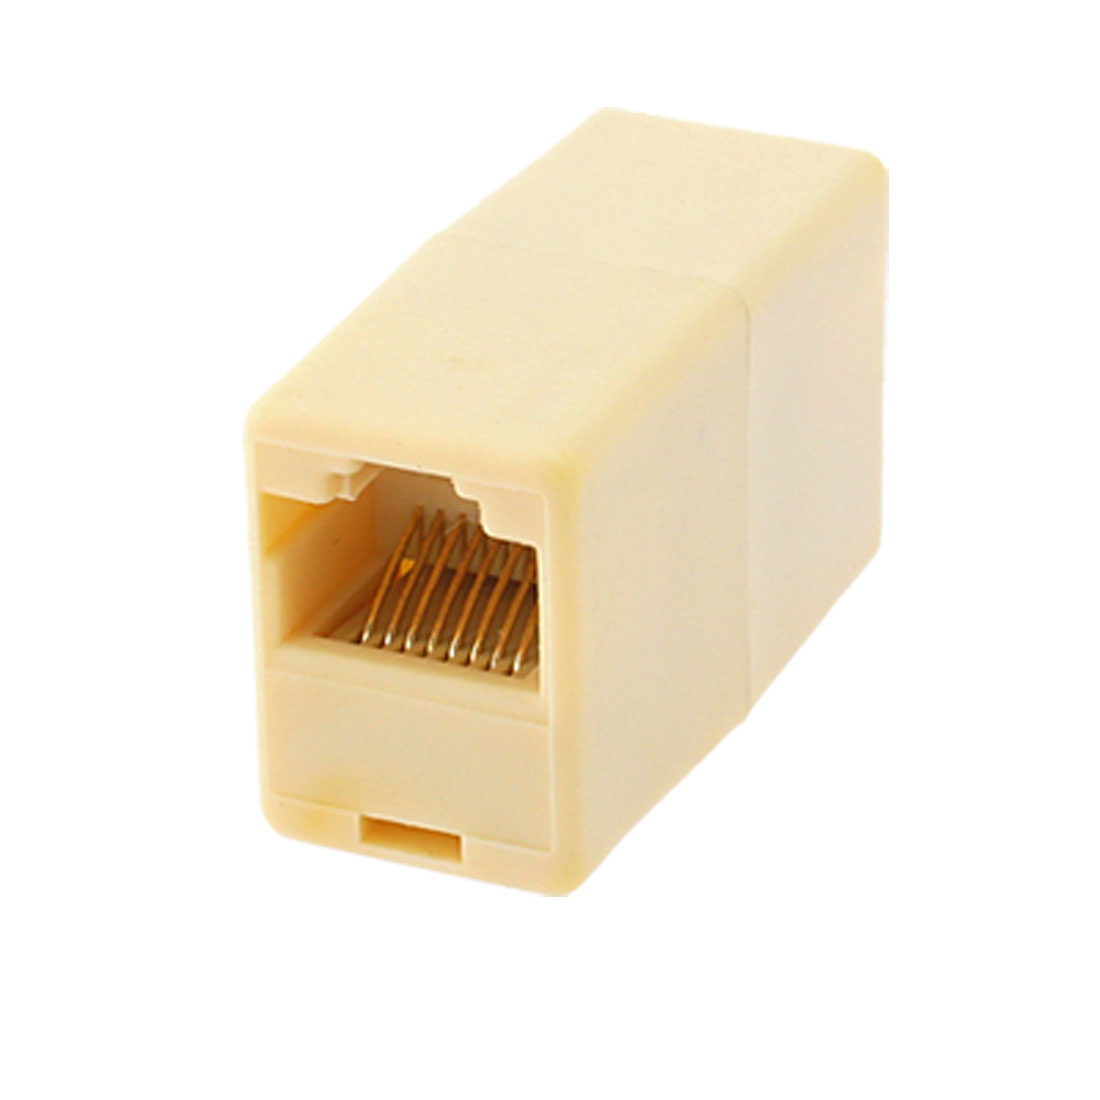 RJ45 8P8C Female CAT 5 Network Cable Adapter Connector Joiner Light Yellow